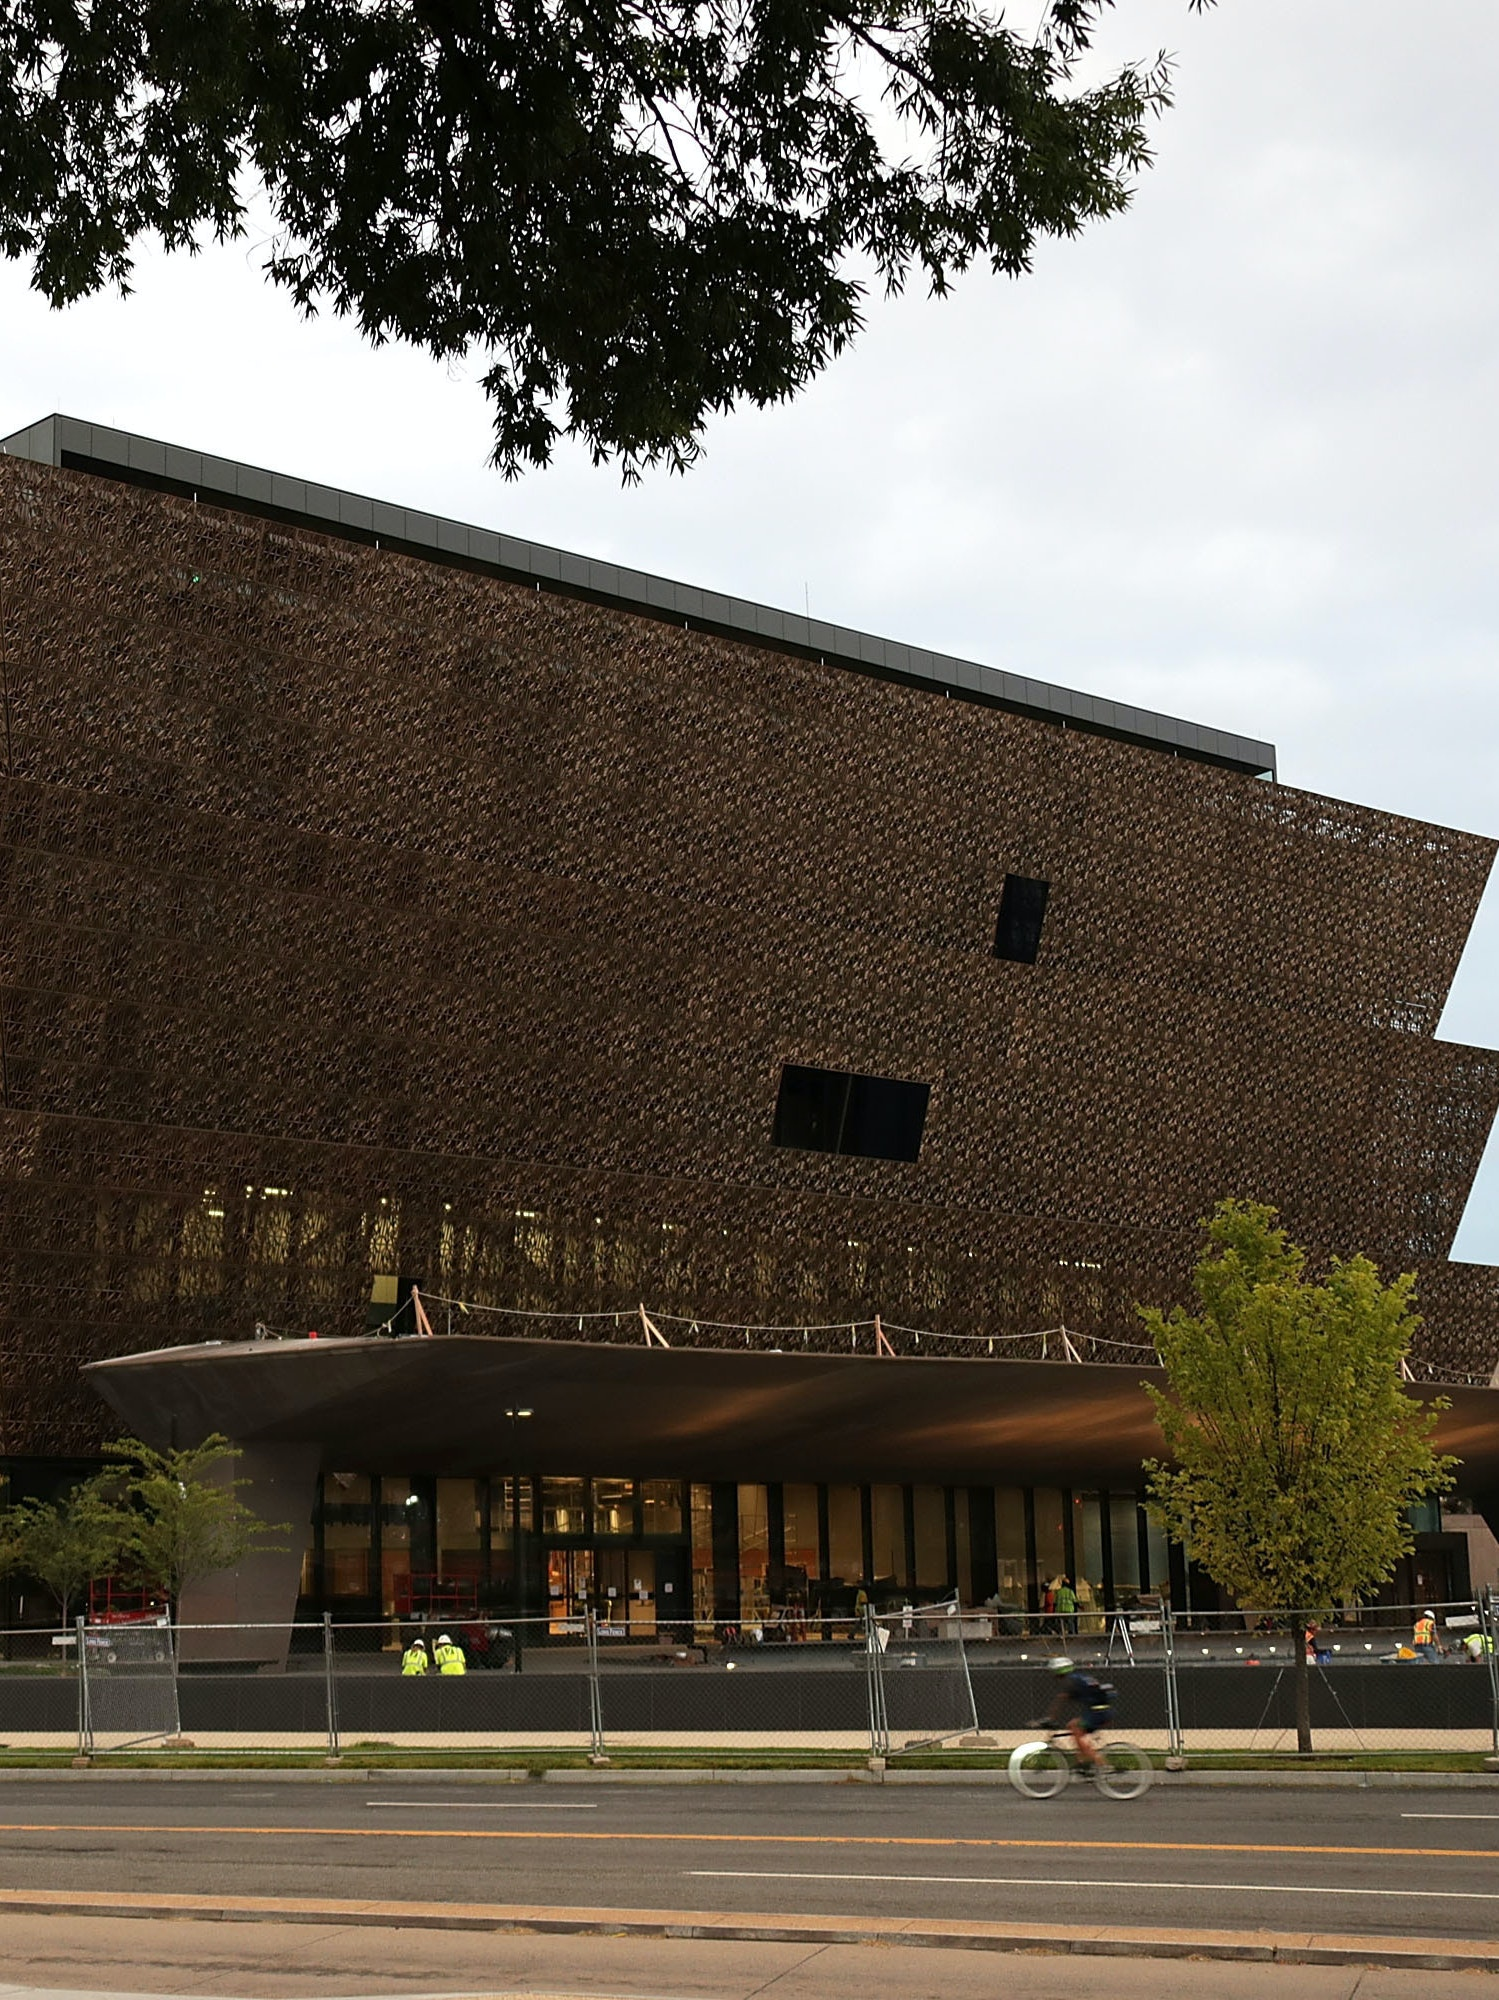 This is a picture of the exterior of the National Museum of African American History and Culture.